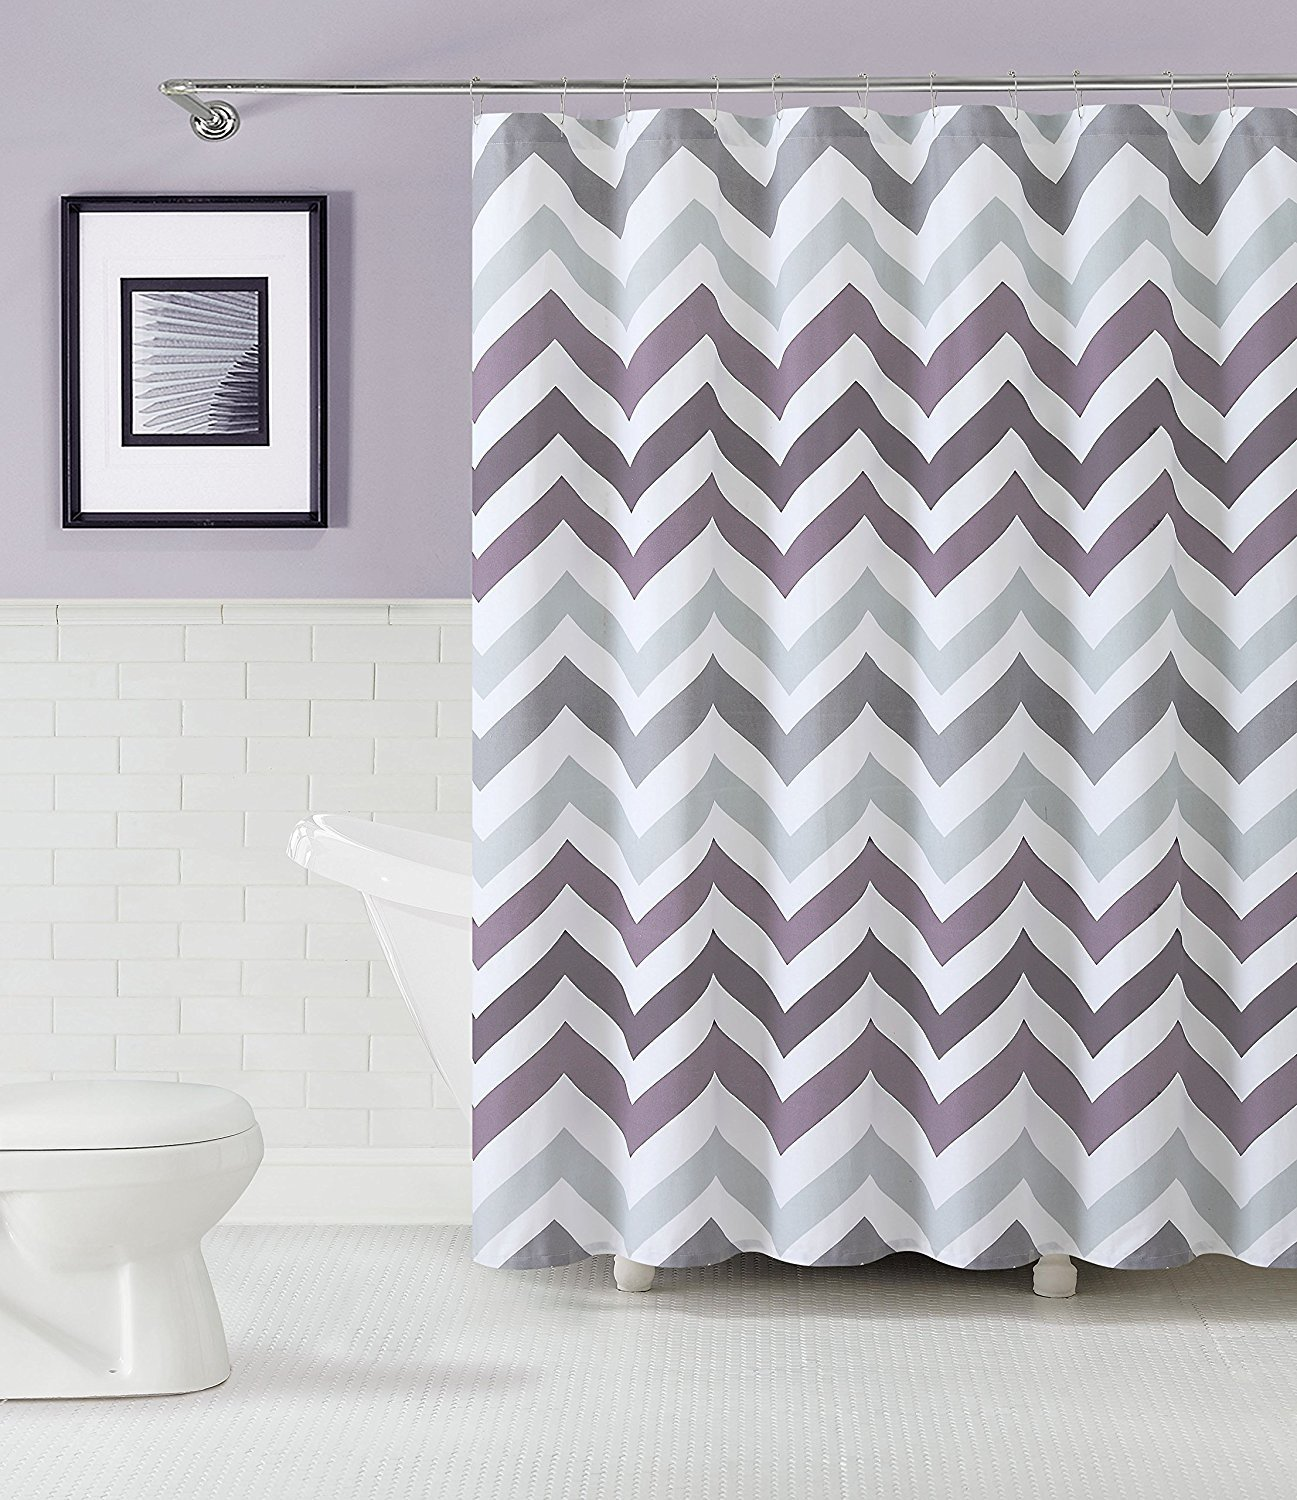 Amazoncom GoodGram Chevron Cotton Fabric Shower Curtain